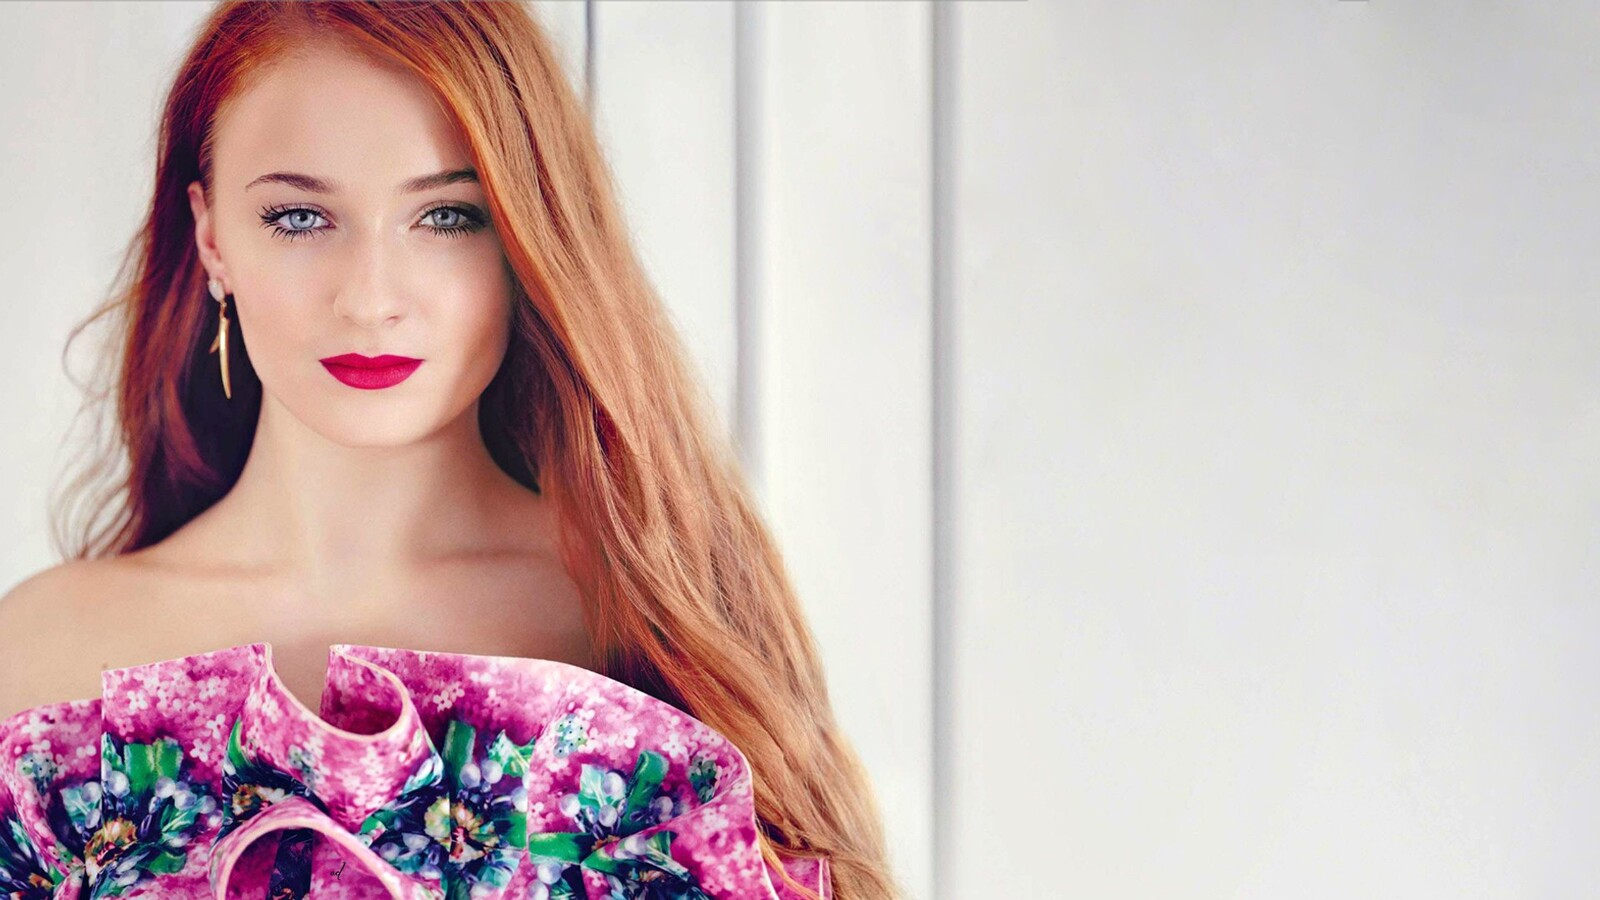 sophie-turner-blue-eyes-image.jpg